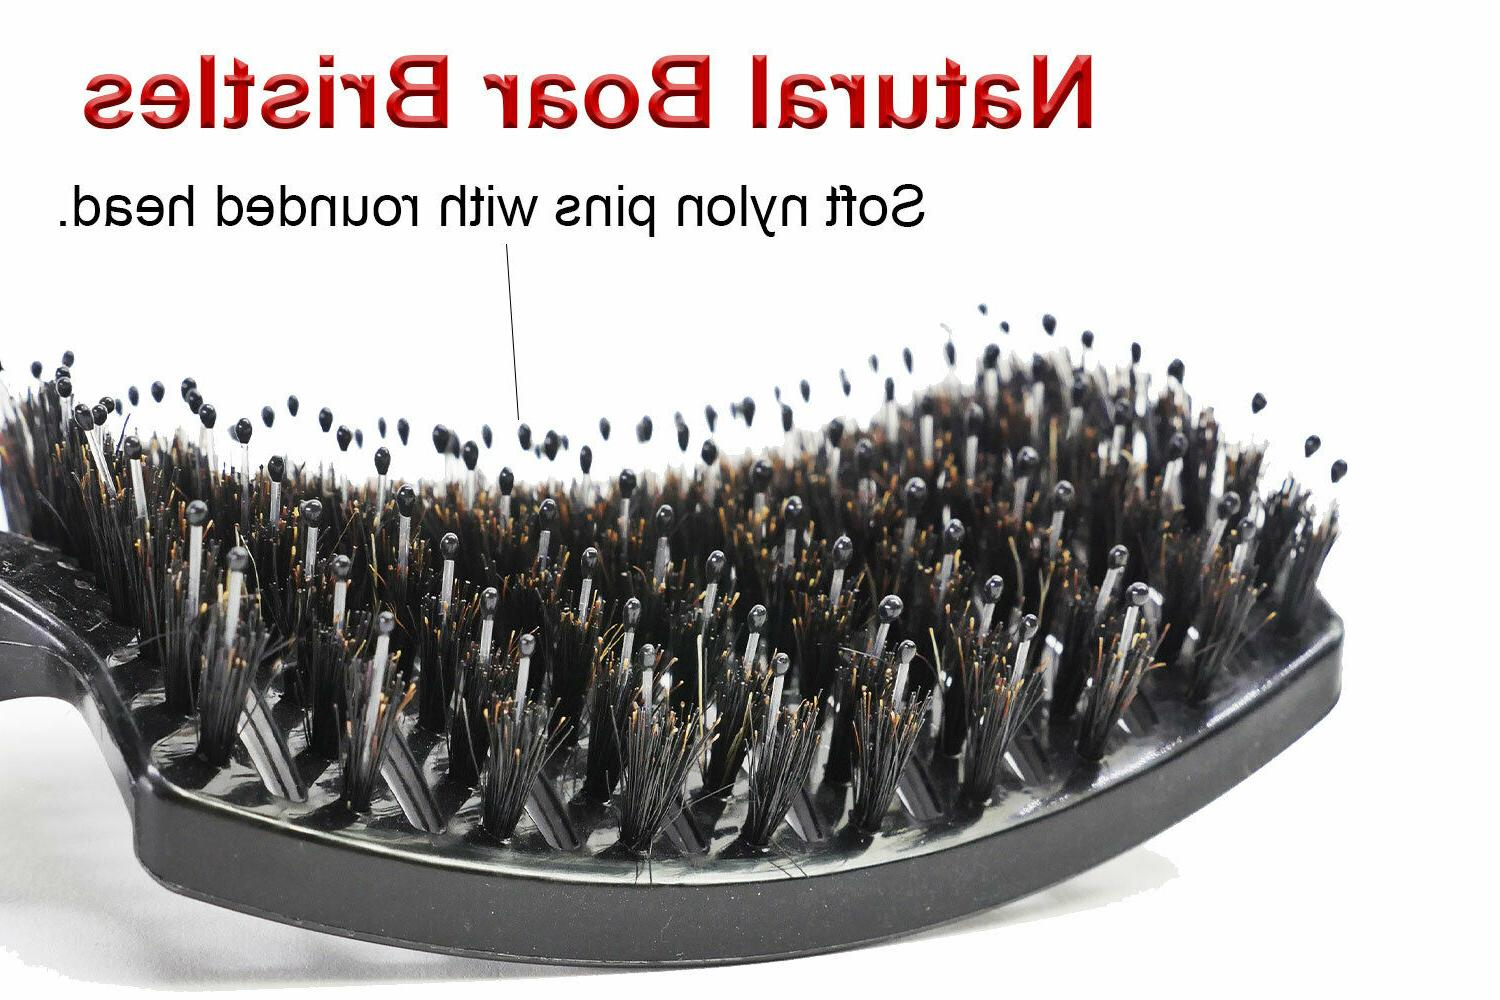 Curved Vented Boar Styling Hair Any or